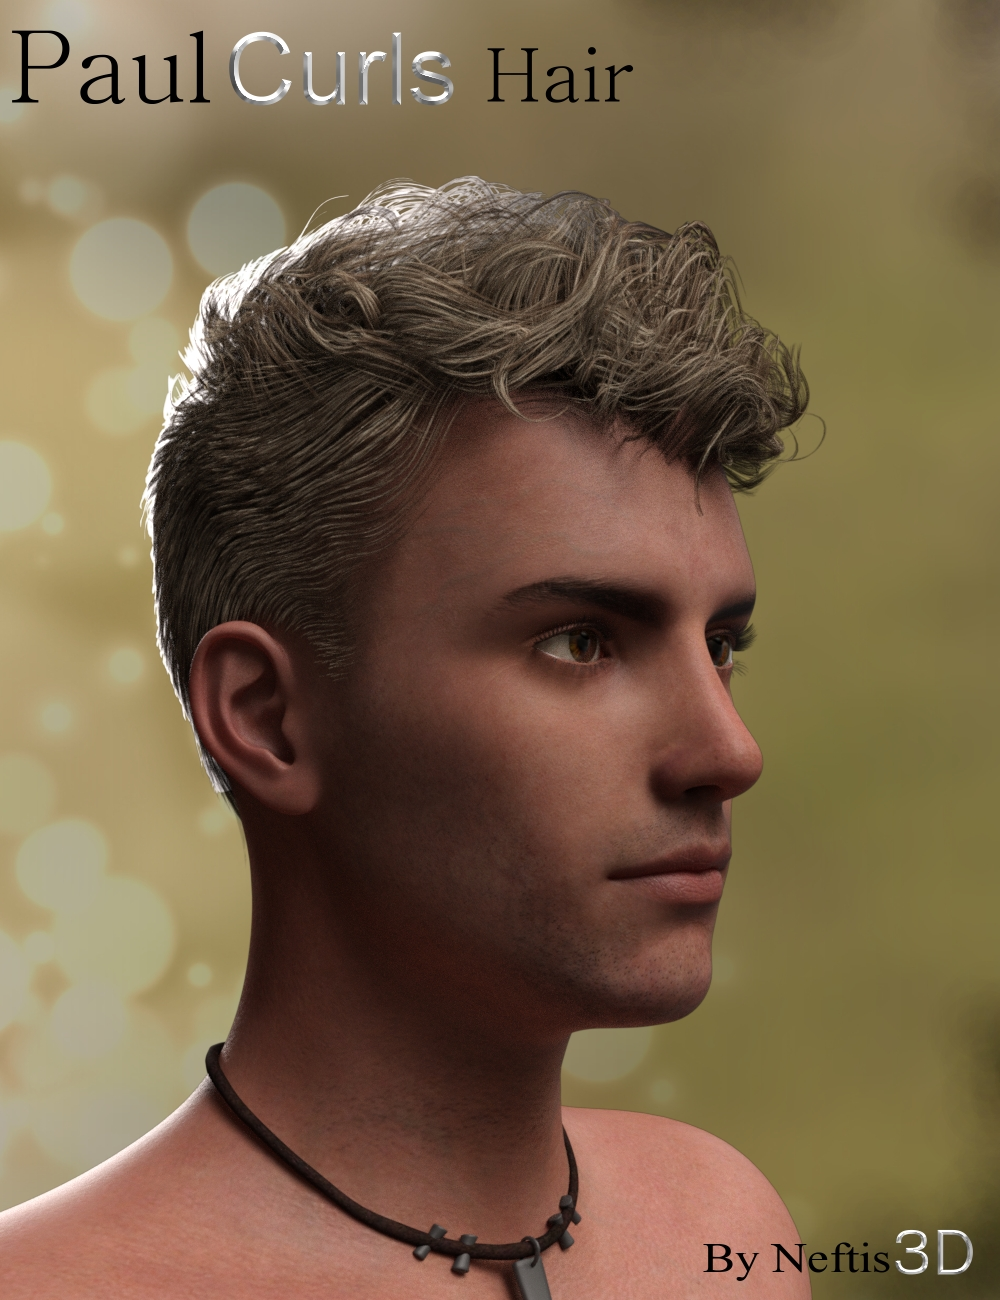 Paul Curls Hairstyle for Genesis 3 Male(s) by: Neftis3D, 3D Models by Daz 3D